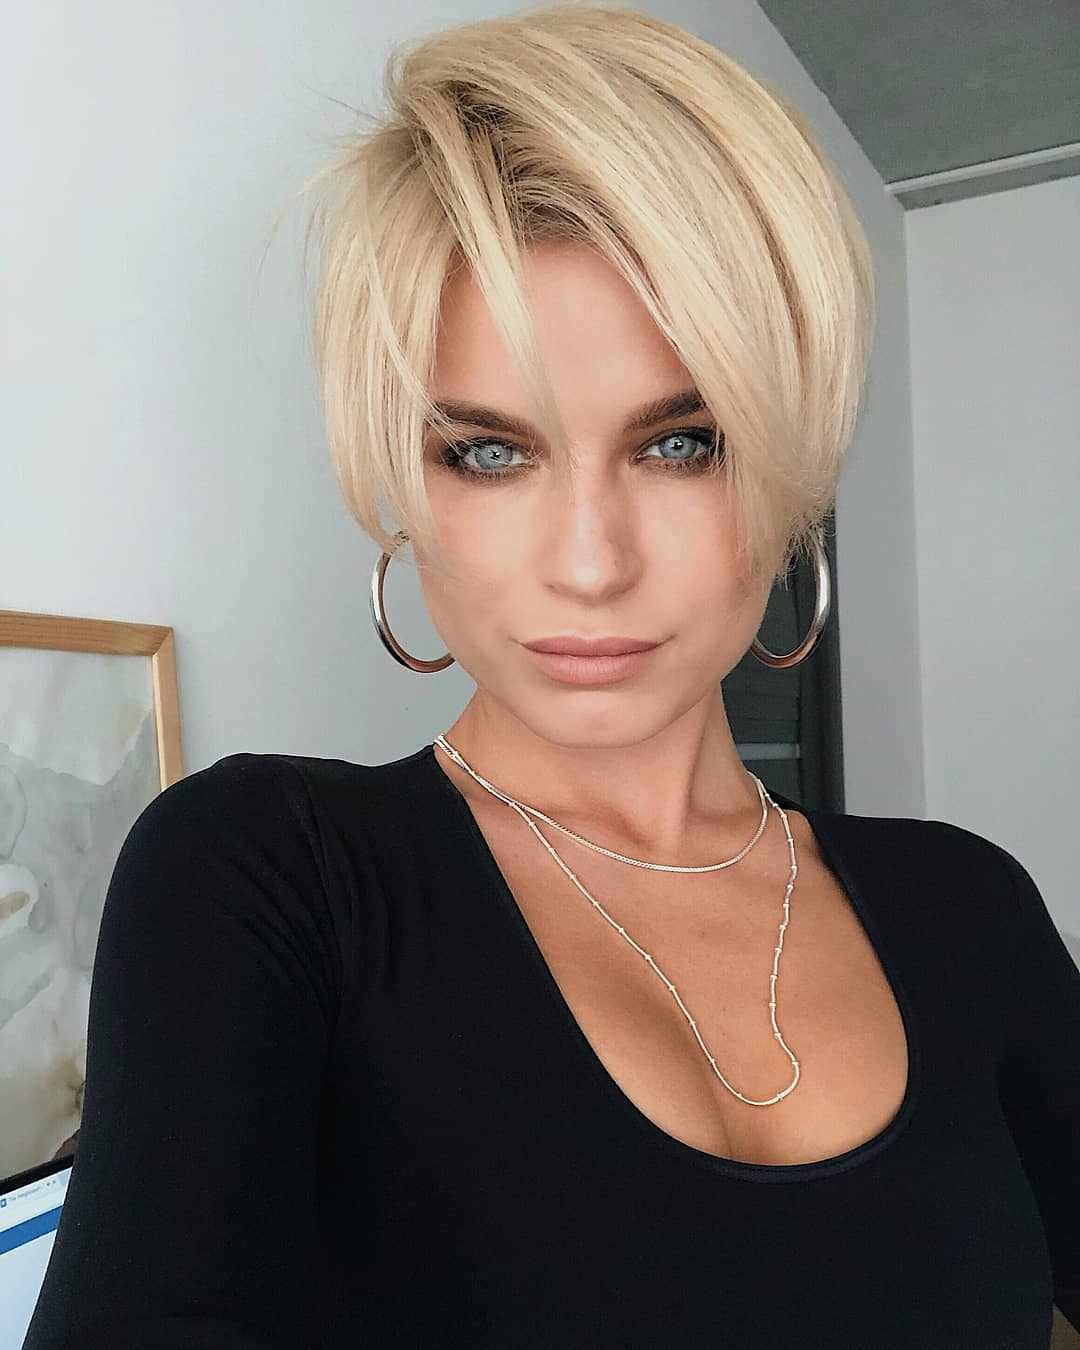 Free Latest Trendy Short Haircuts 2019 » Hairstyle Samples Wallpaper